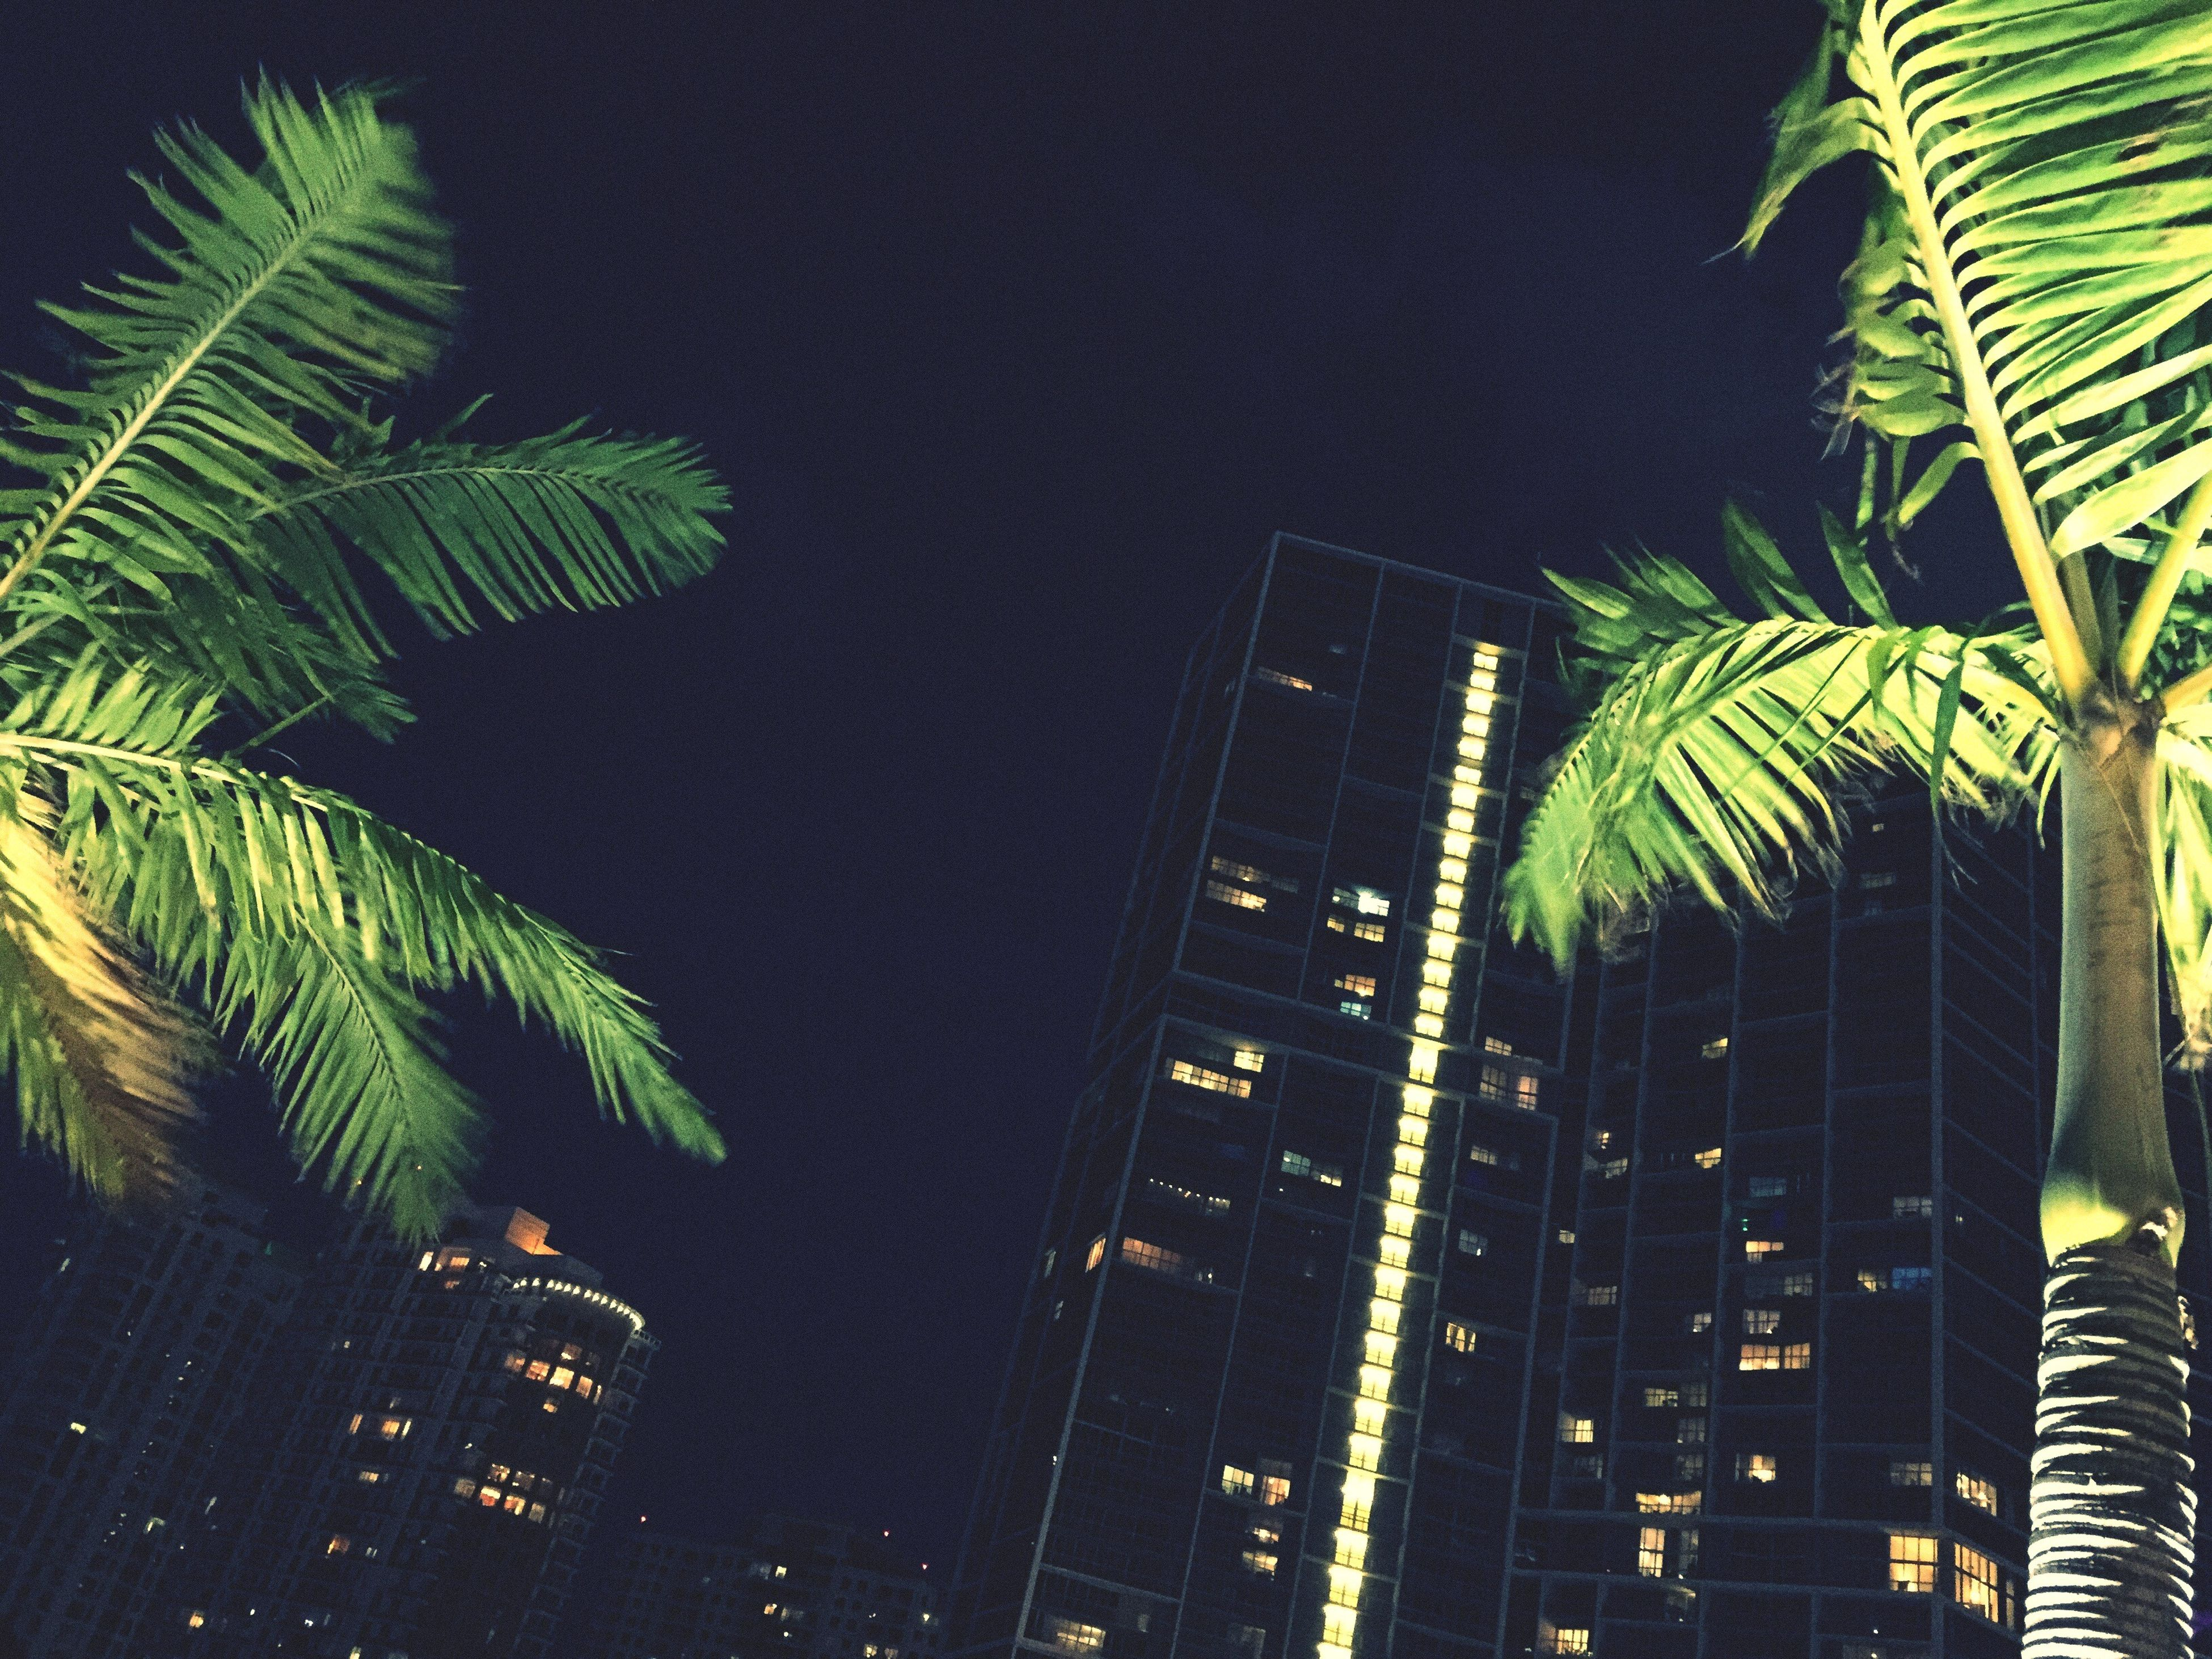 palm tree, leaf, growth, low angle view, tree, green color, palm leaf, nature, outdoors, illuminated, tall - high, no people, sky, green, beauty in nature, close-up